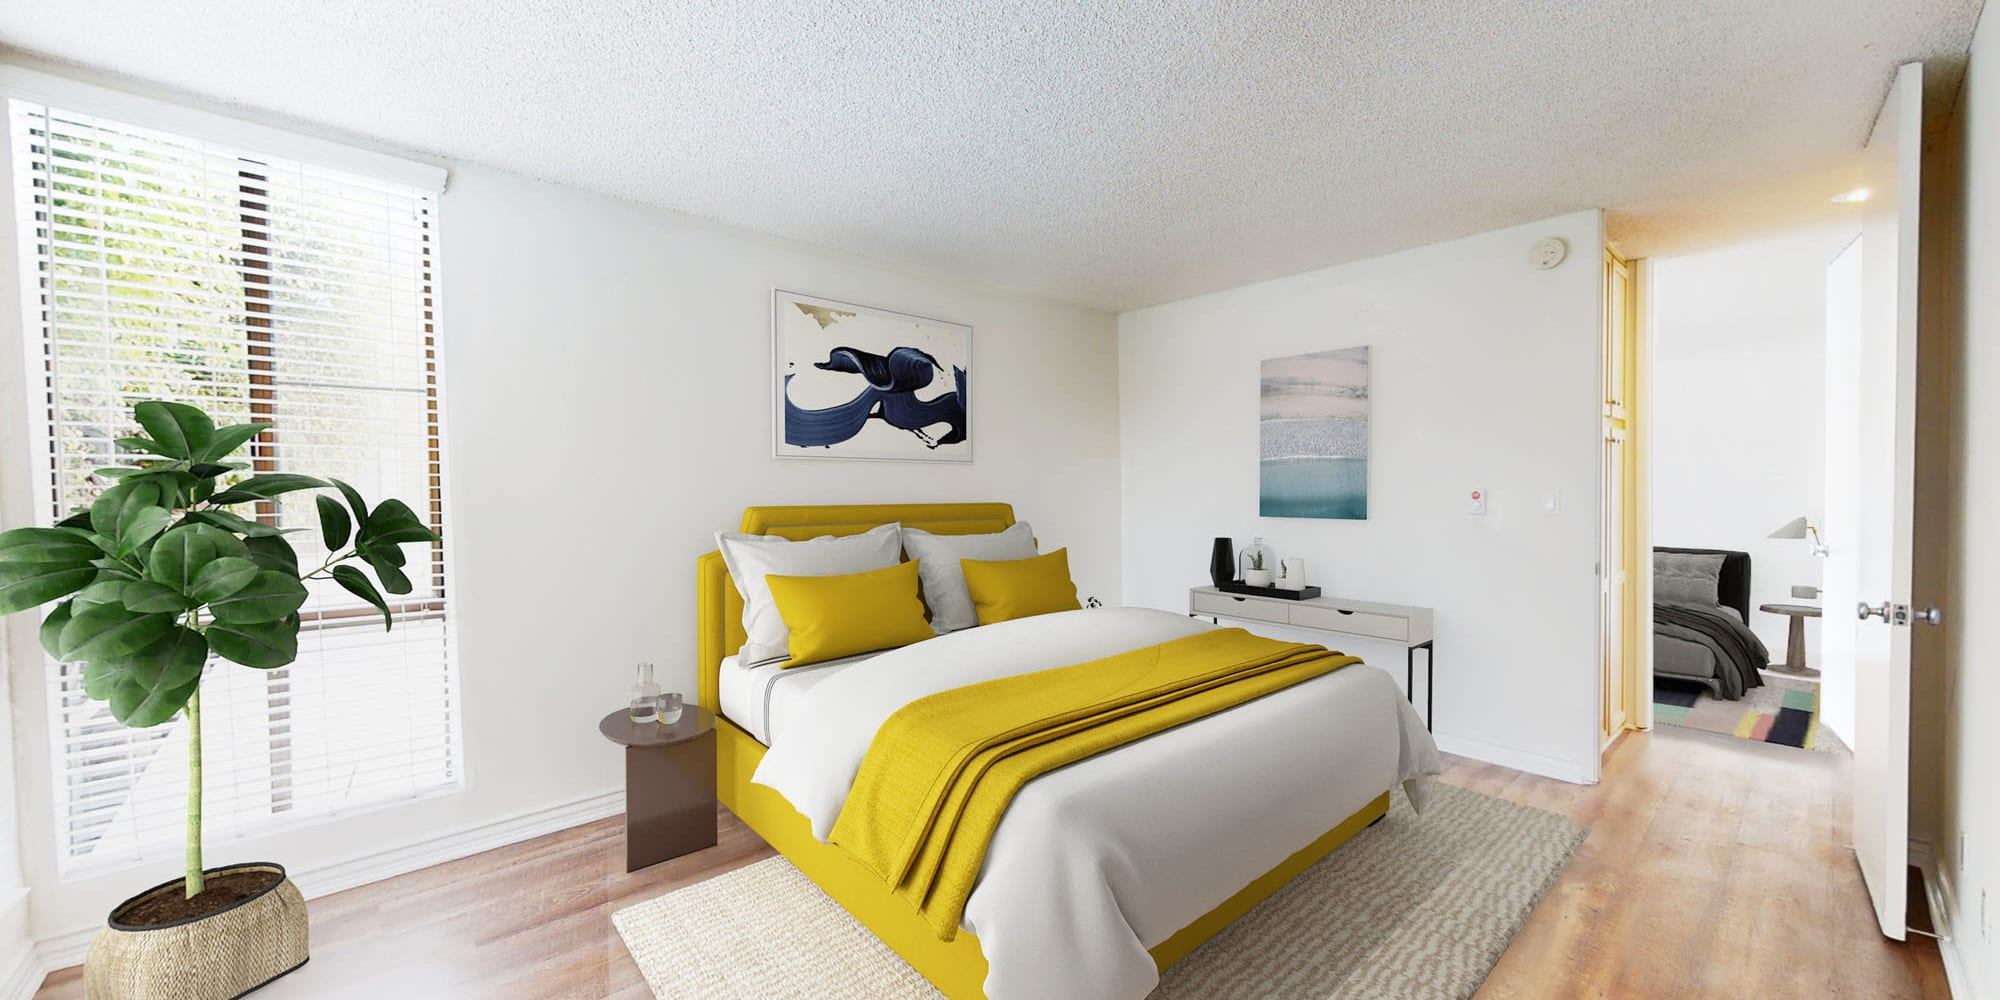 Spacious bedroom with extra storage and hardwood floors at Mariners Village in Marina del Rey, California